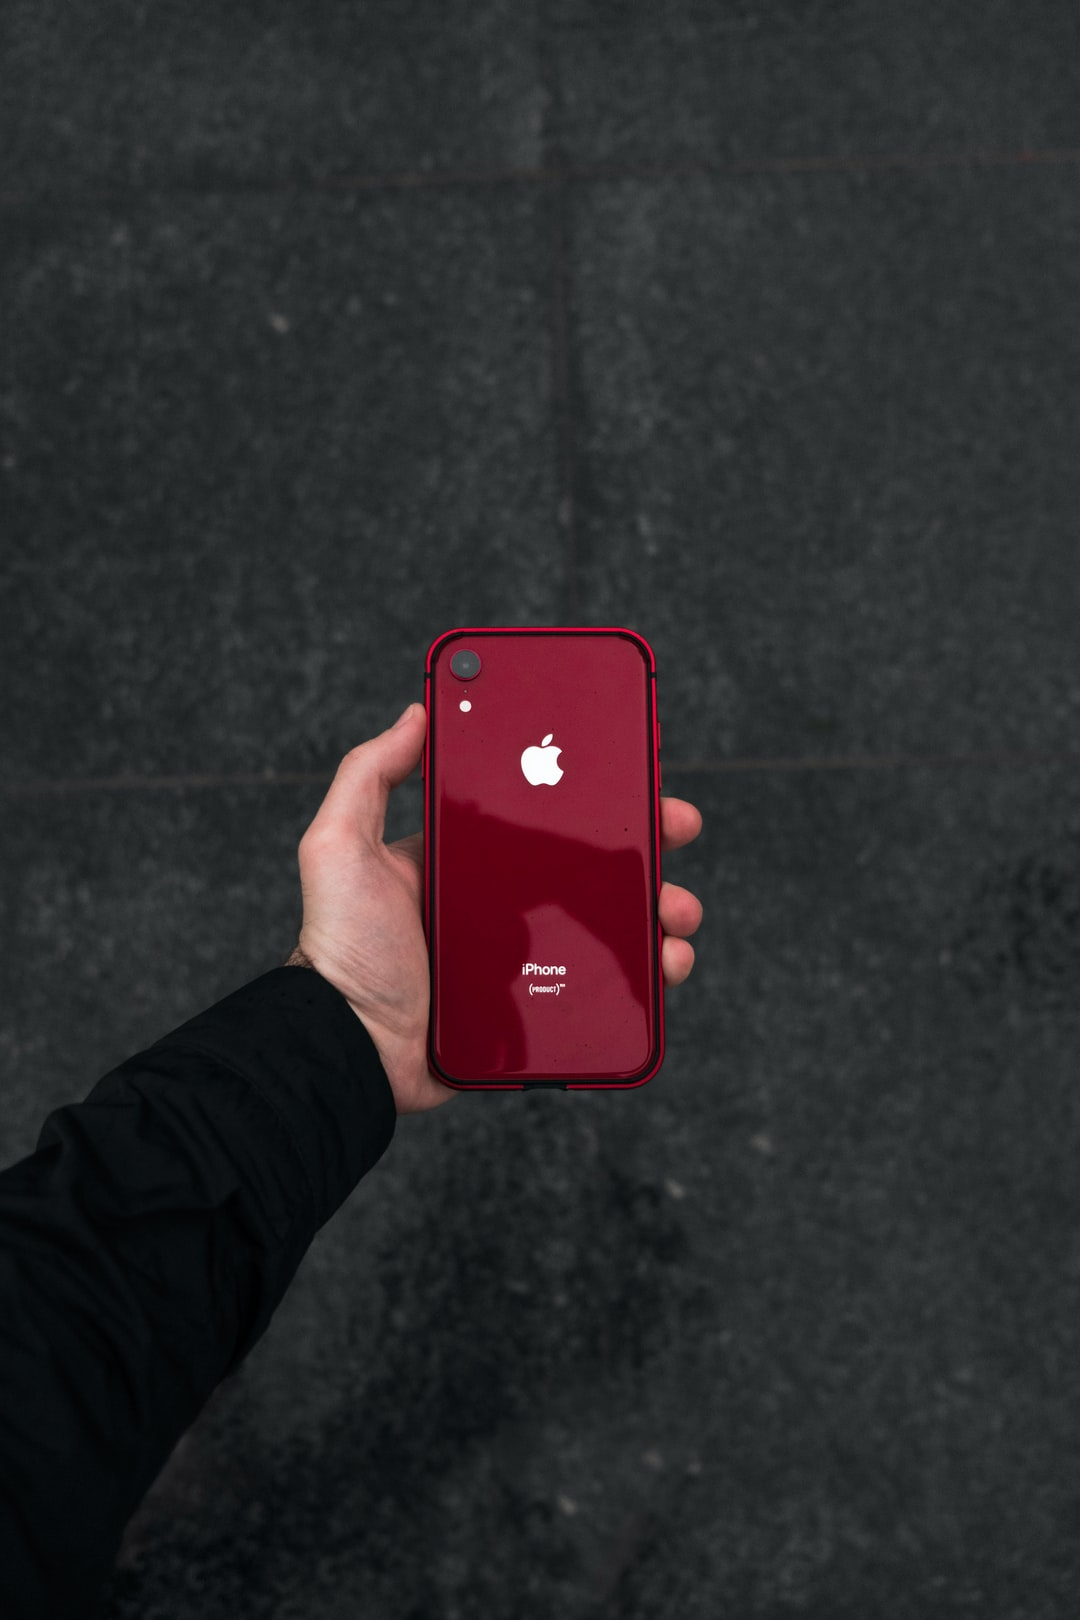 750+ Iphone Xr Pictures | Download Free